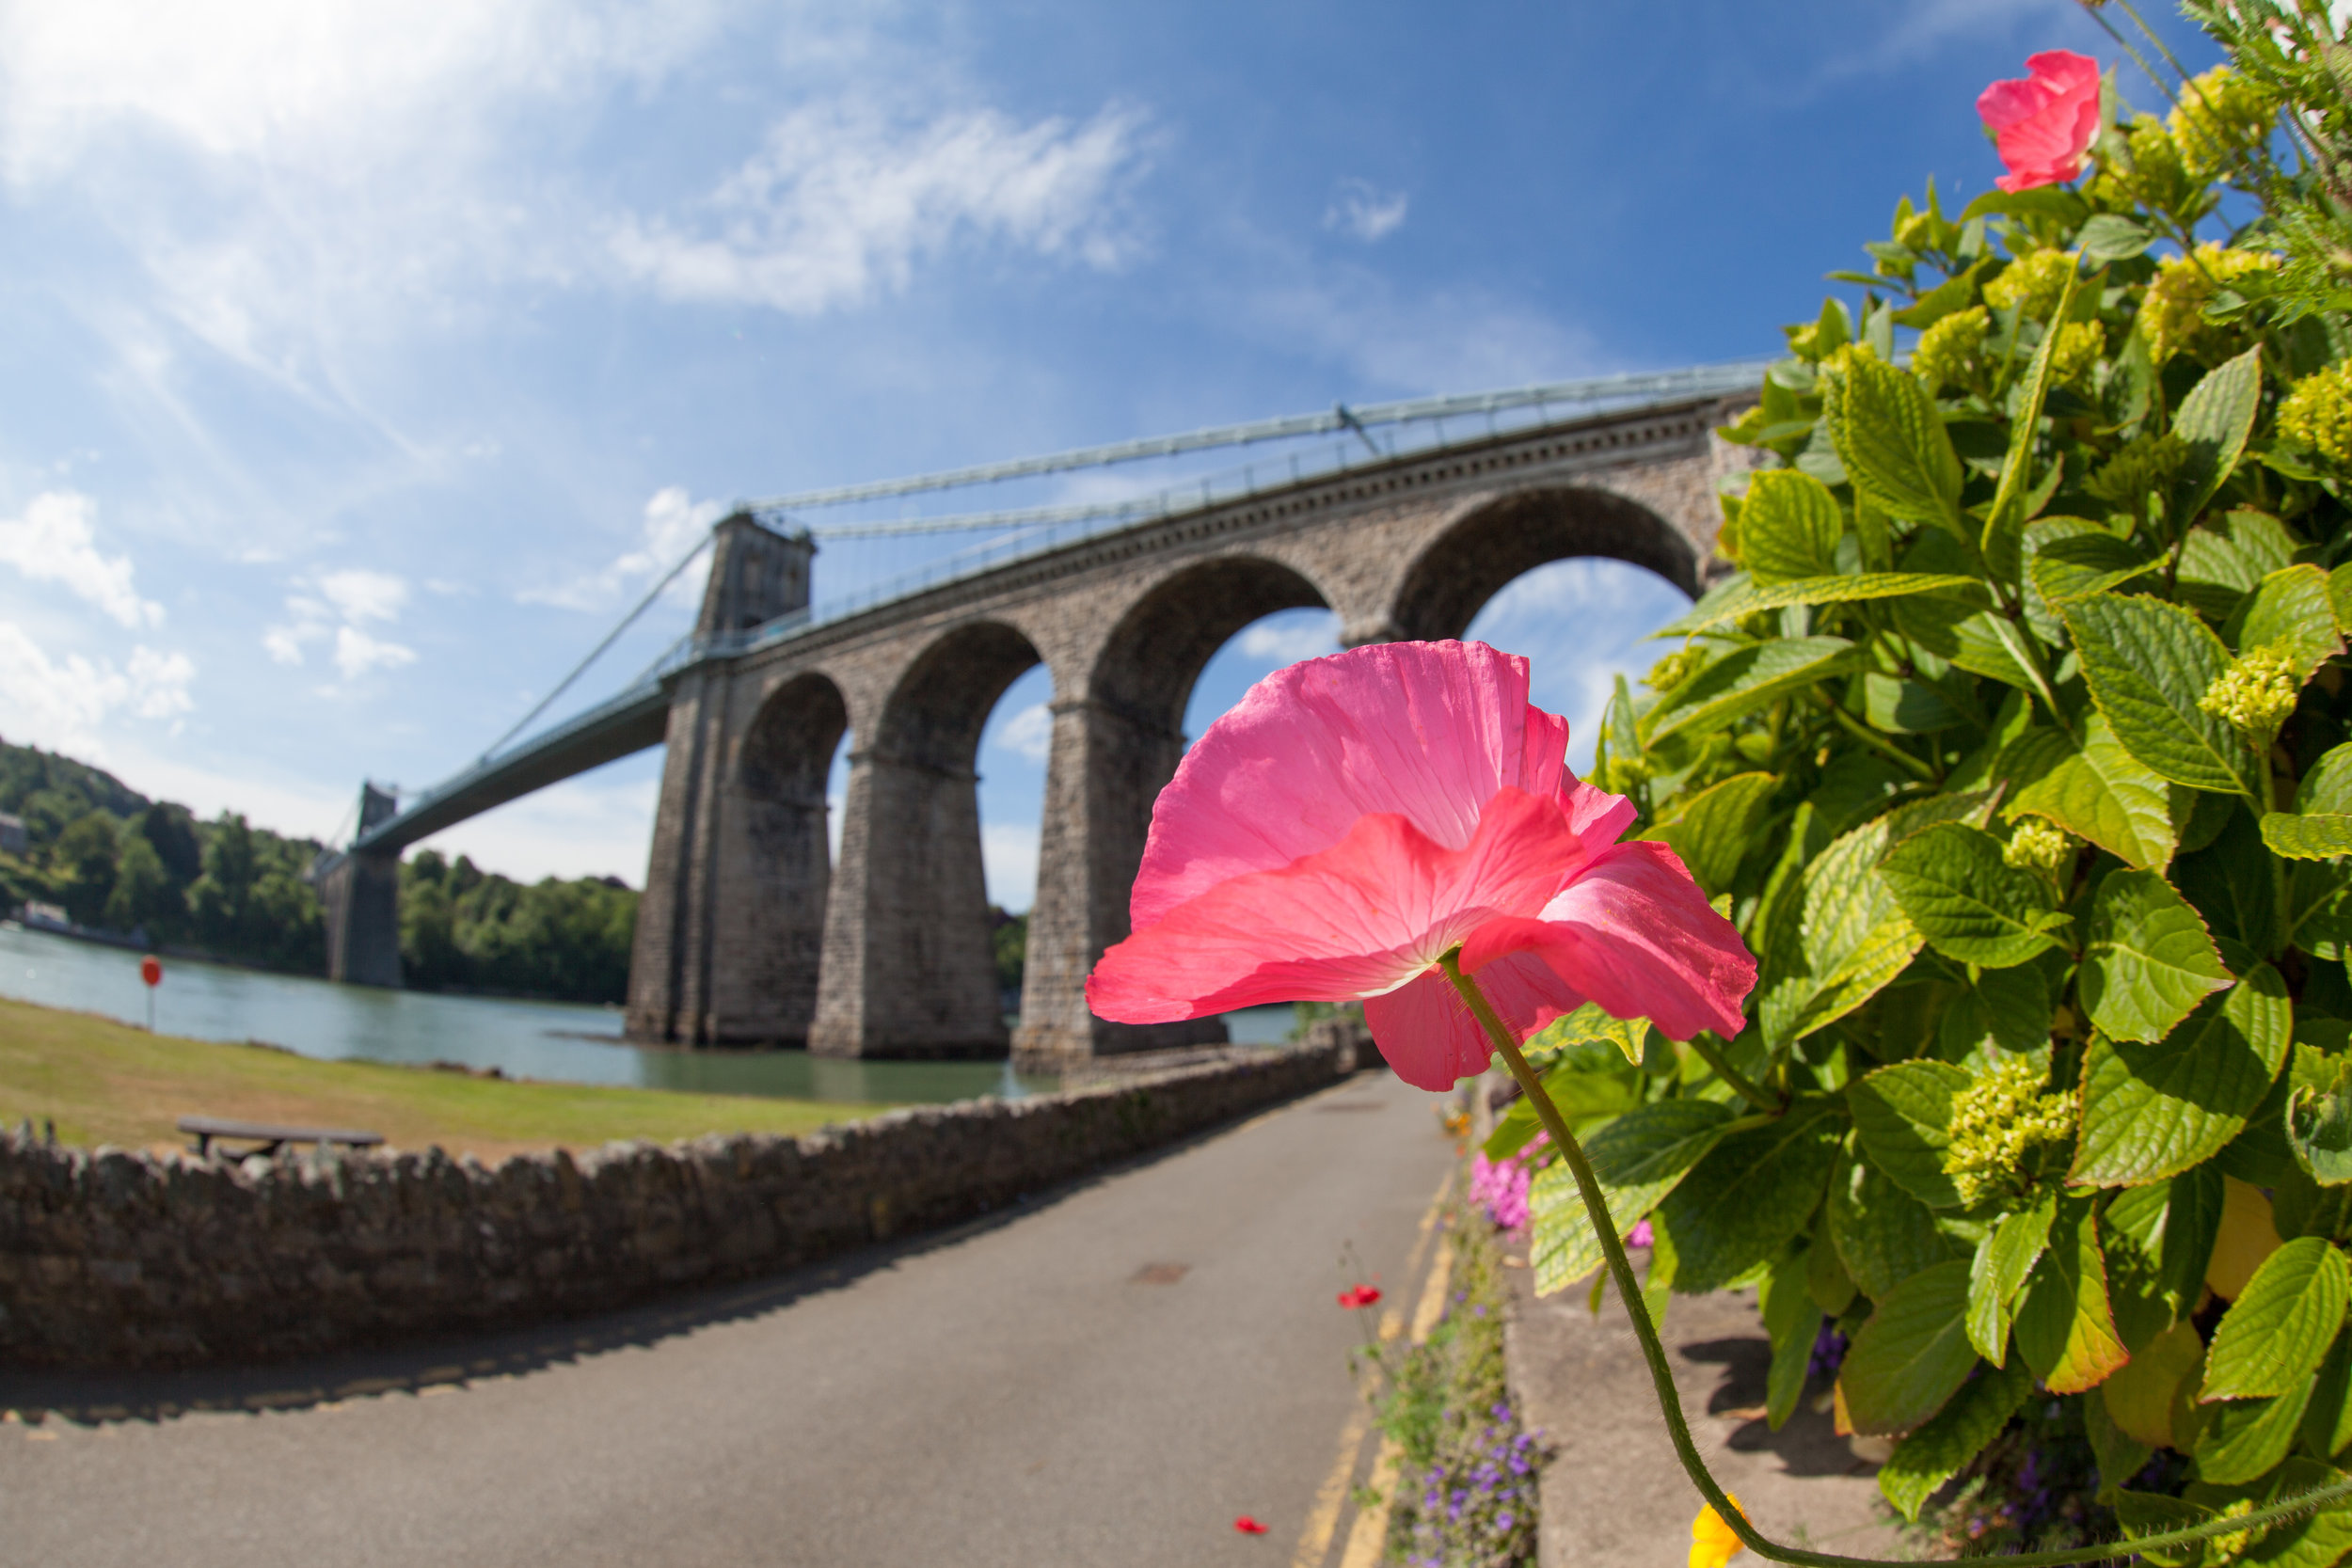 A pink flower in front of Bridge over the Menai Strait, Anglesey, North Wales.